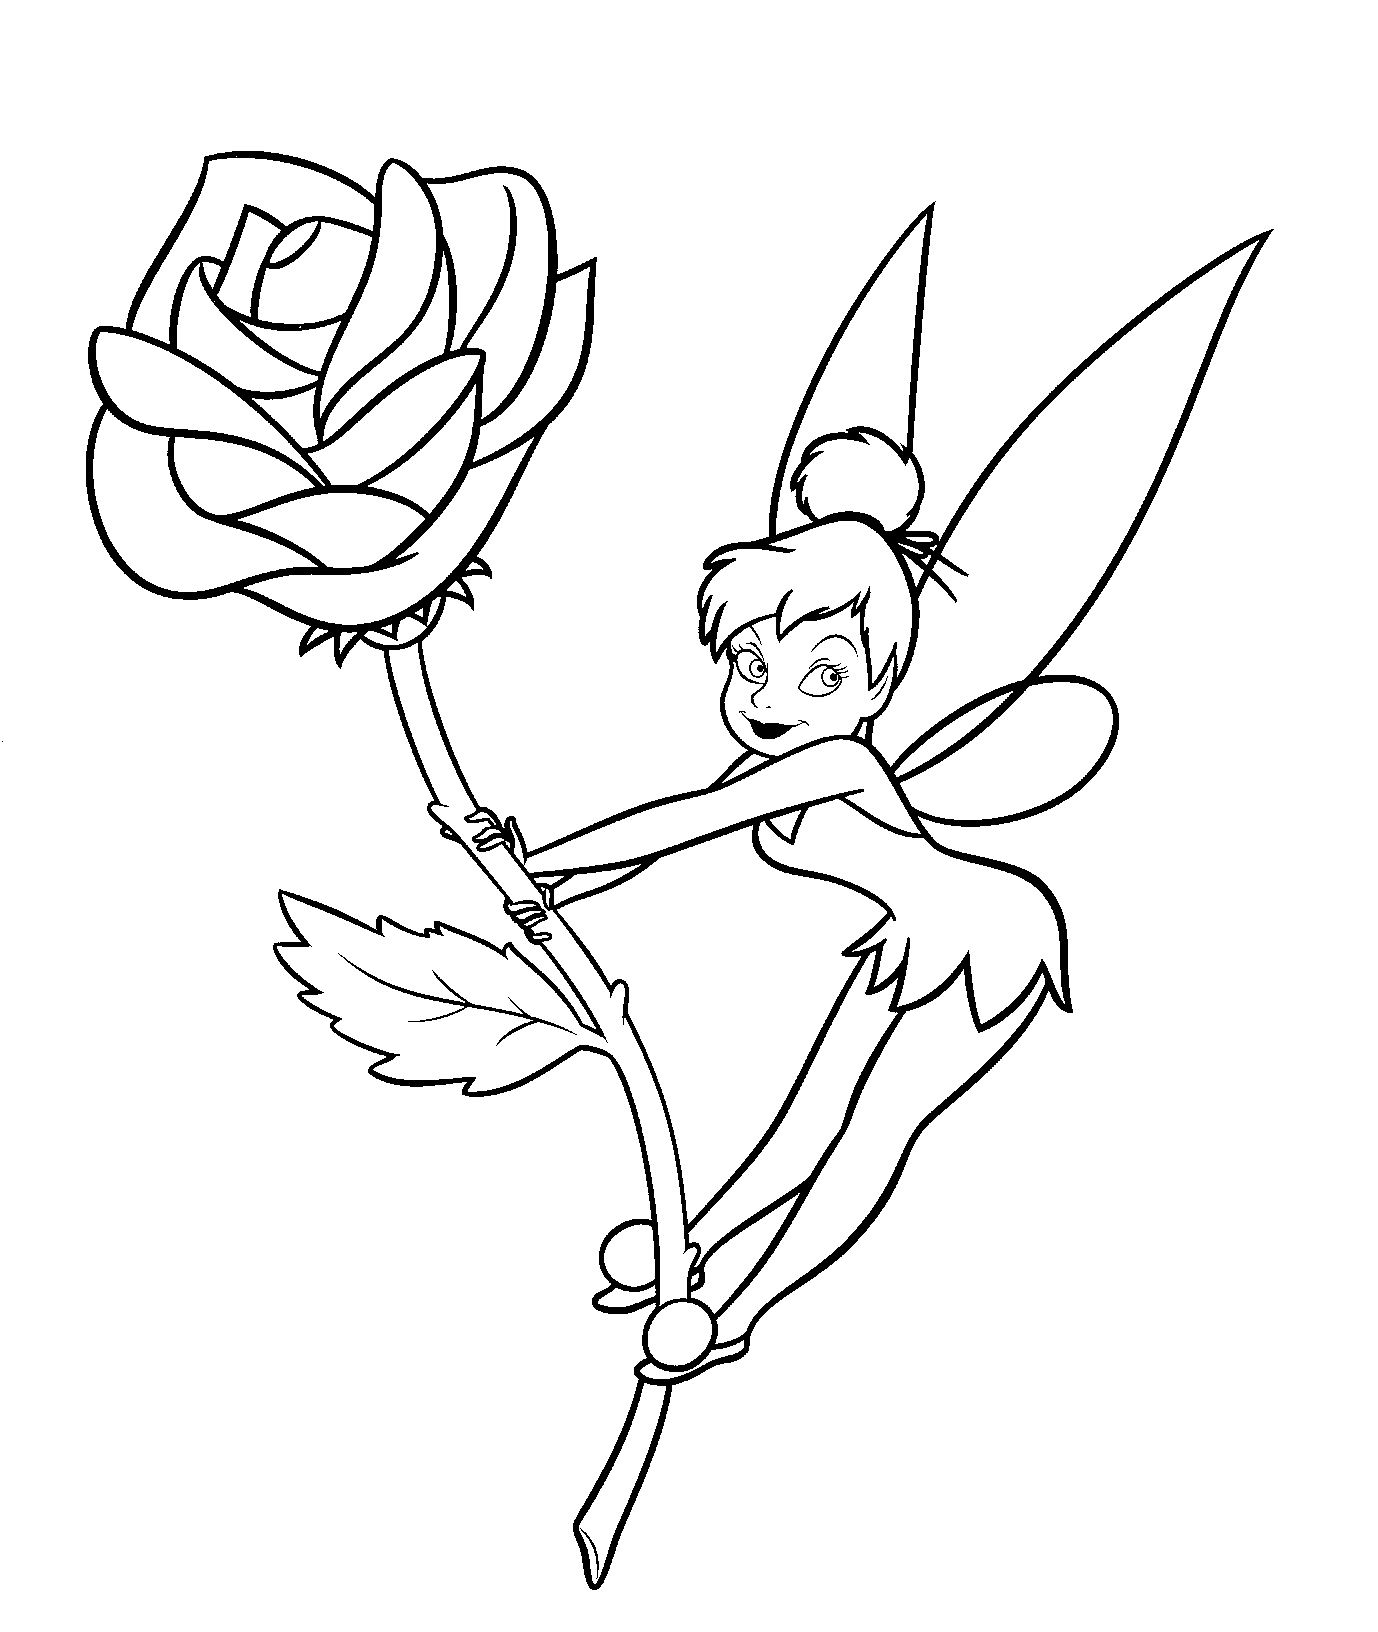 tinkerbell coloring book coloring pages tinkerbell coloring pages and clip art book coloring tinkerbell